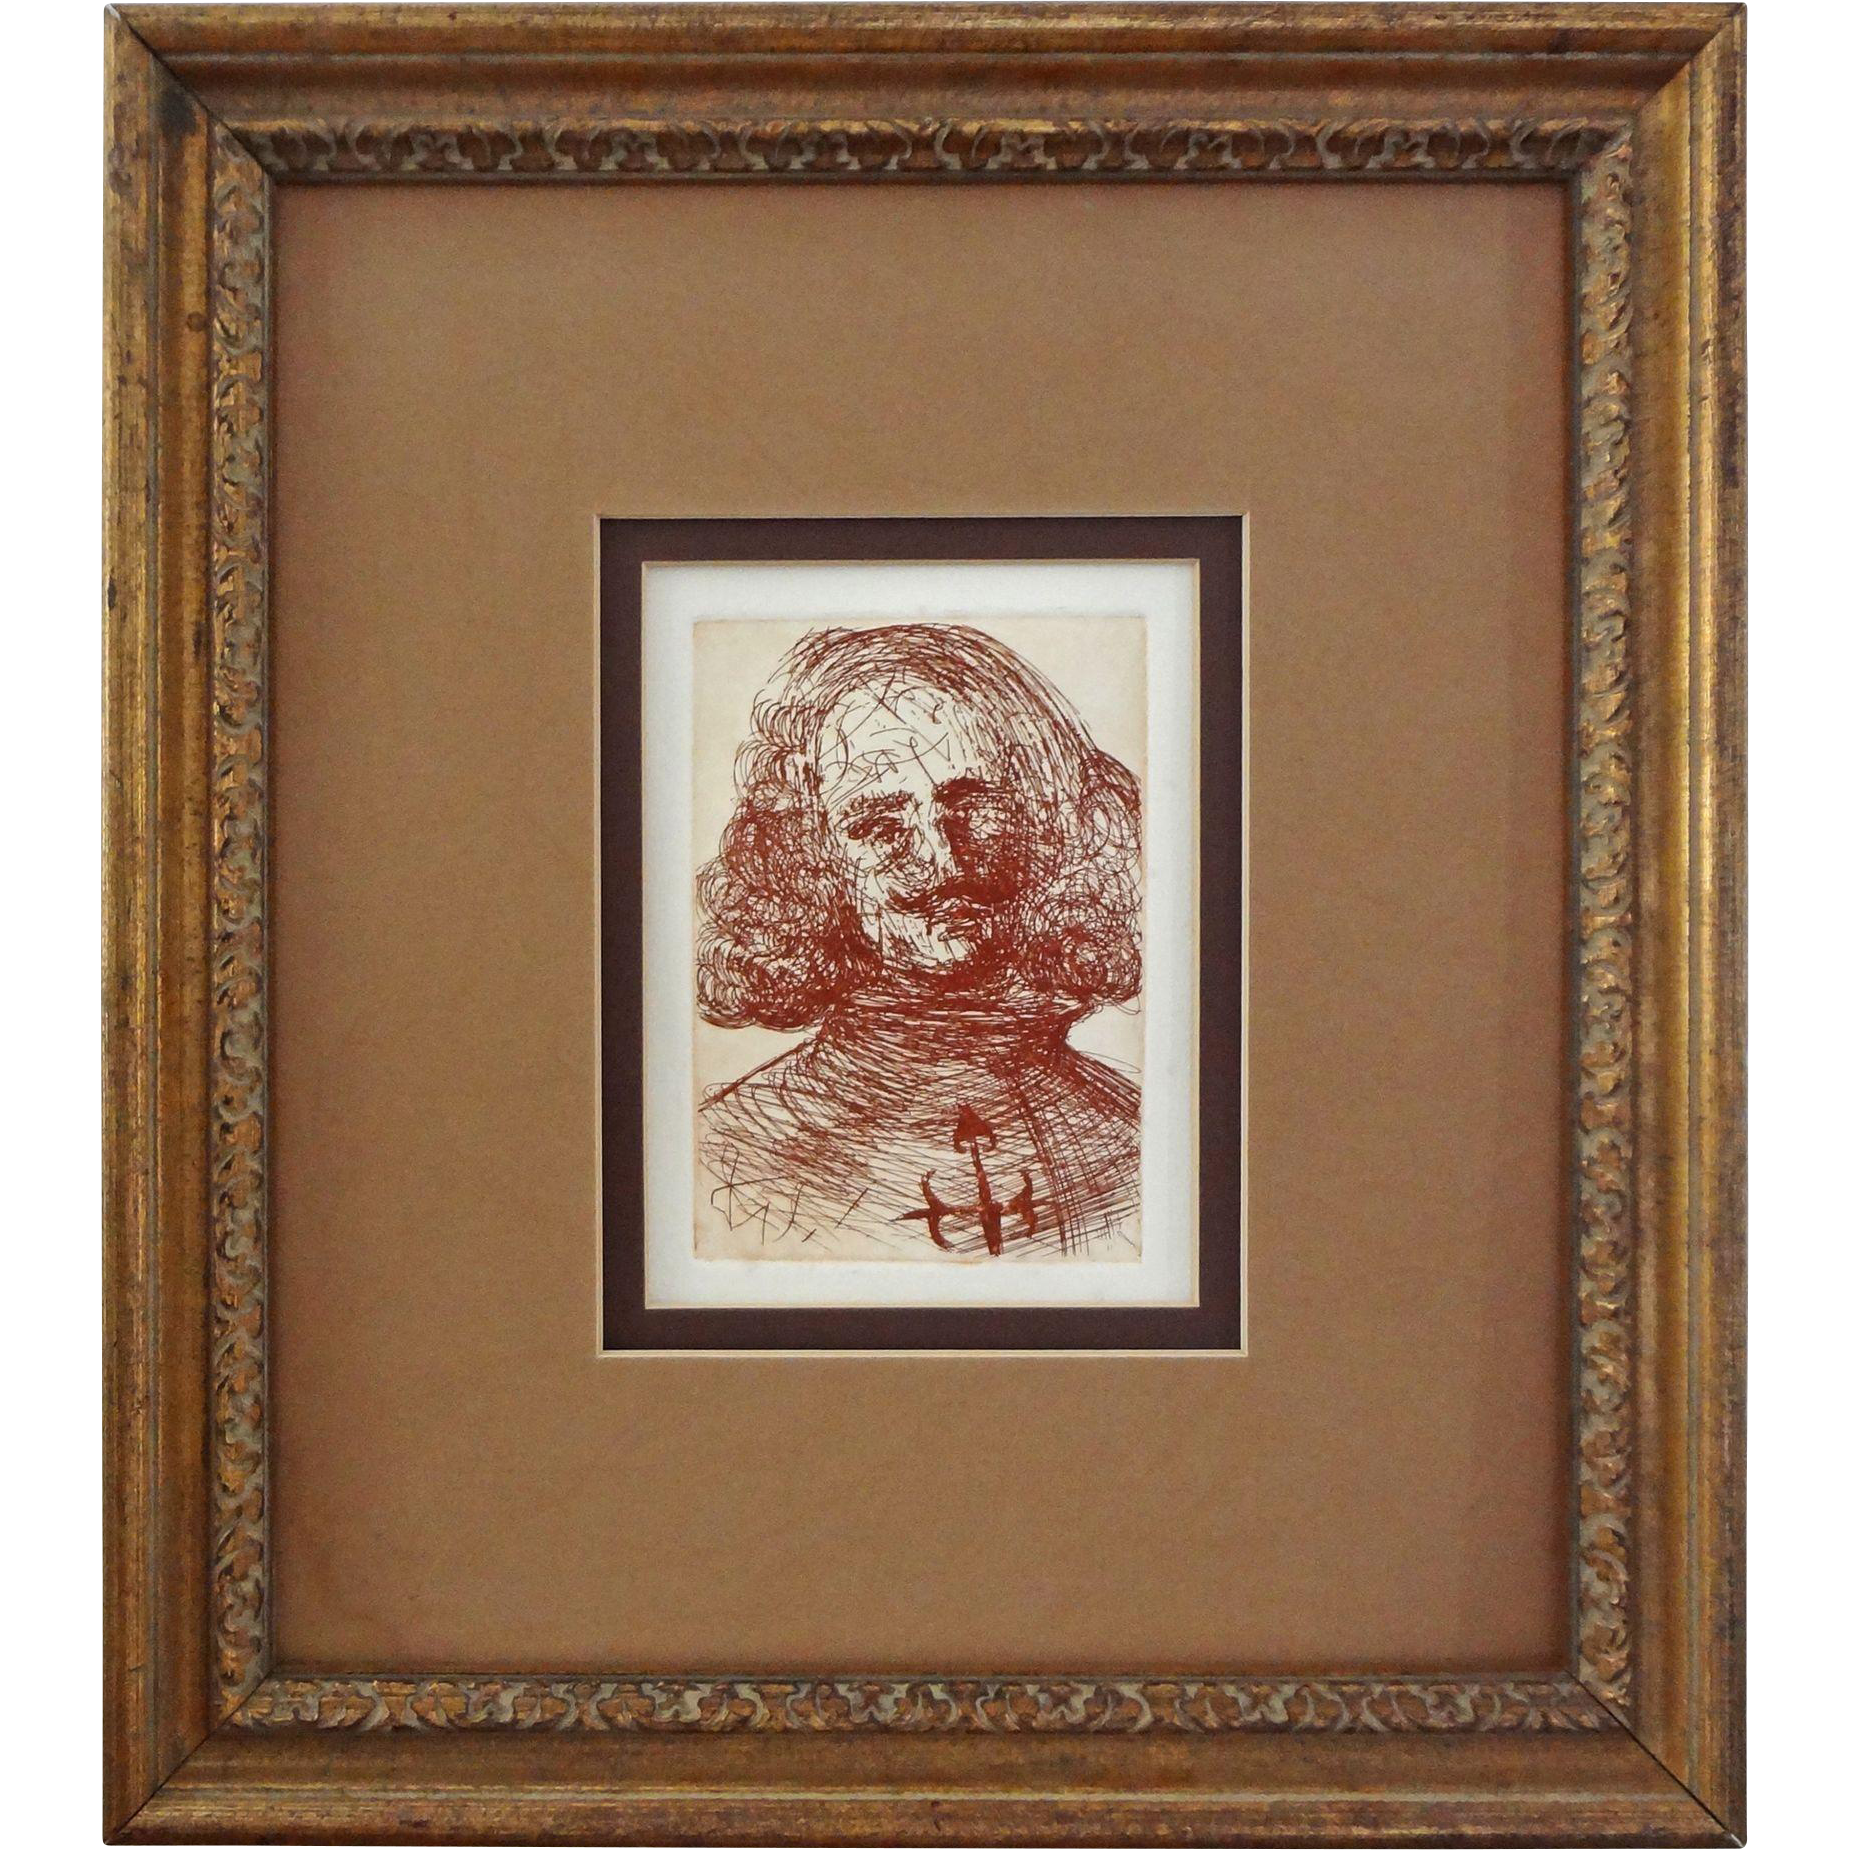 Sepia Etching Velazquez Spanish Inmortals Series after Dali Framed - 20th Century